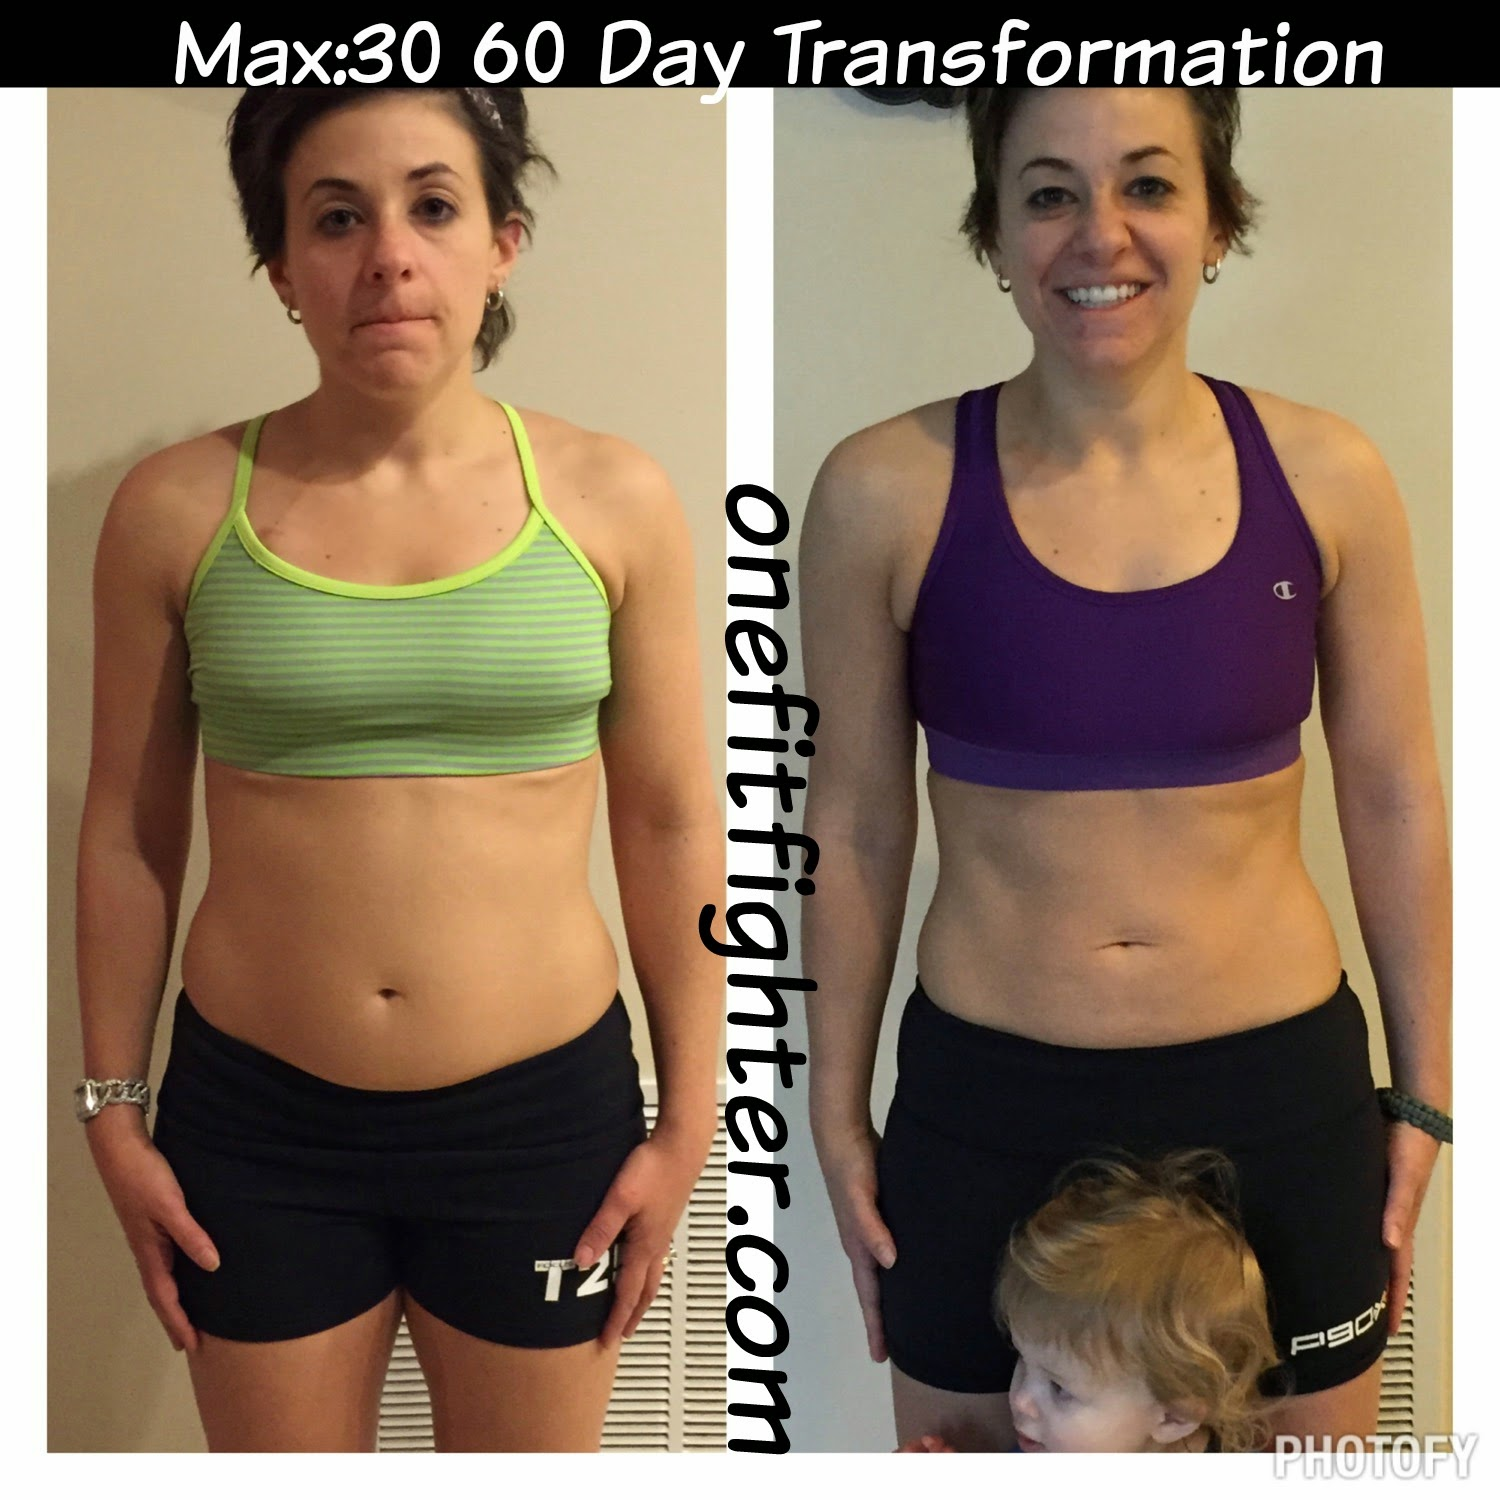 My Max:30 Transformation and the 3x Fix Failure Attempts